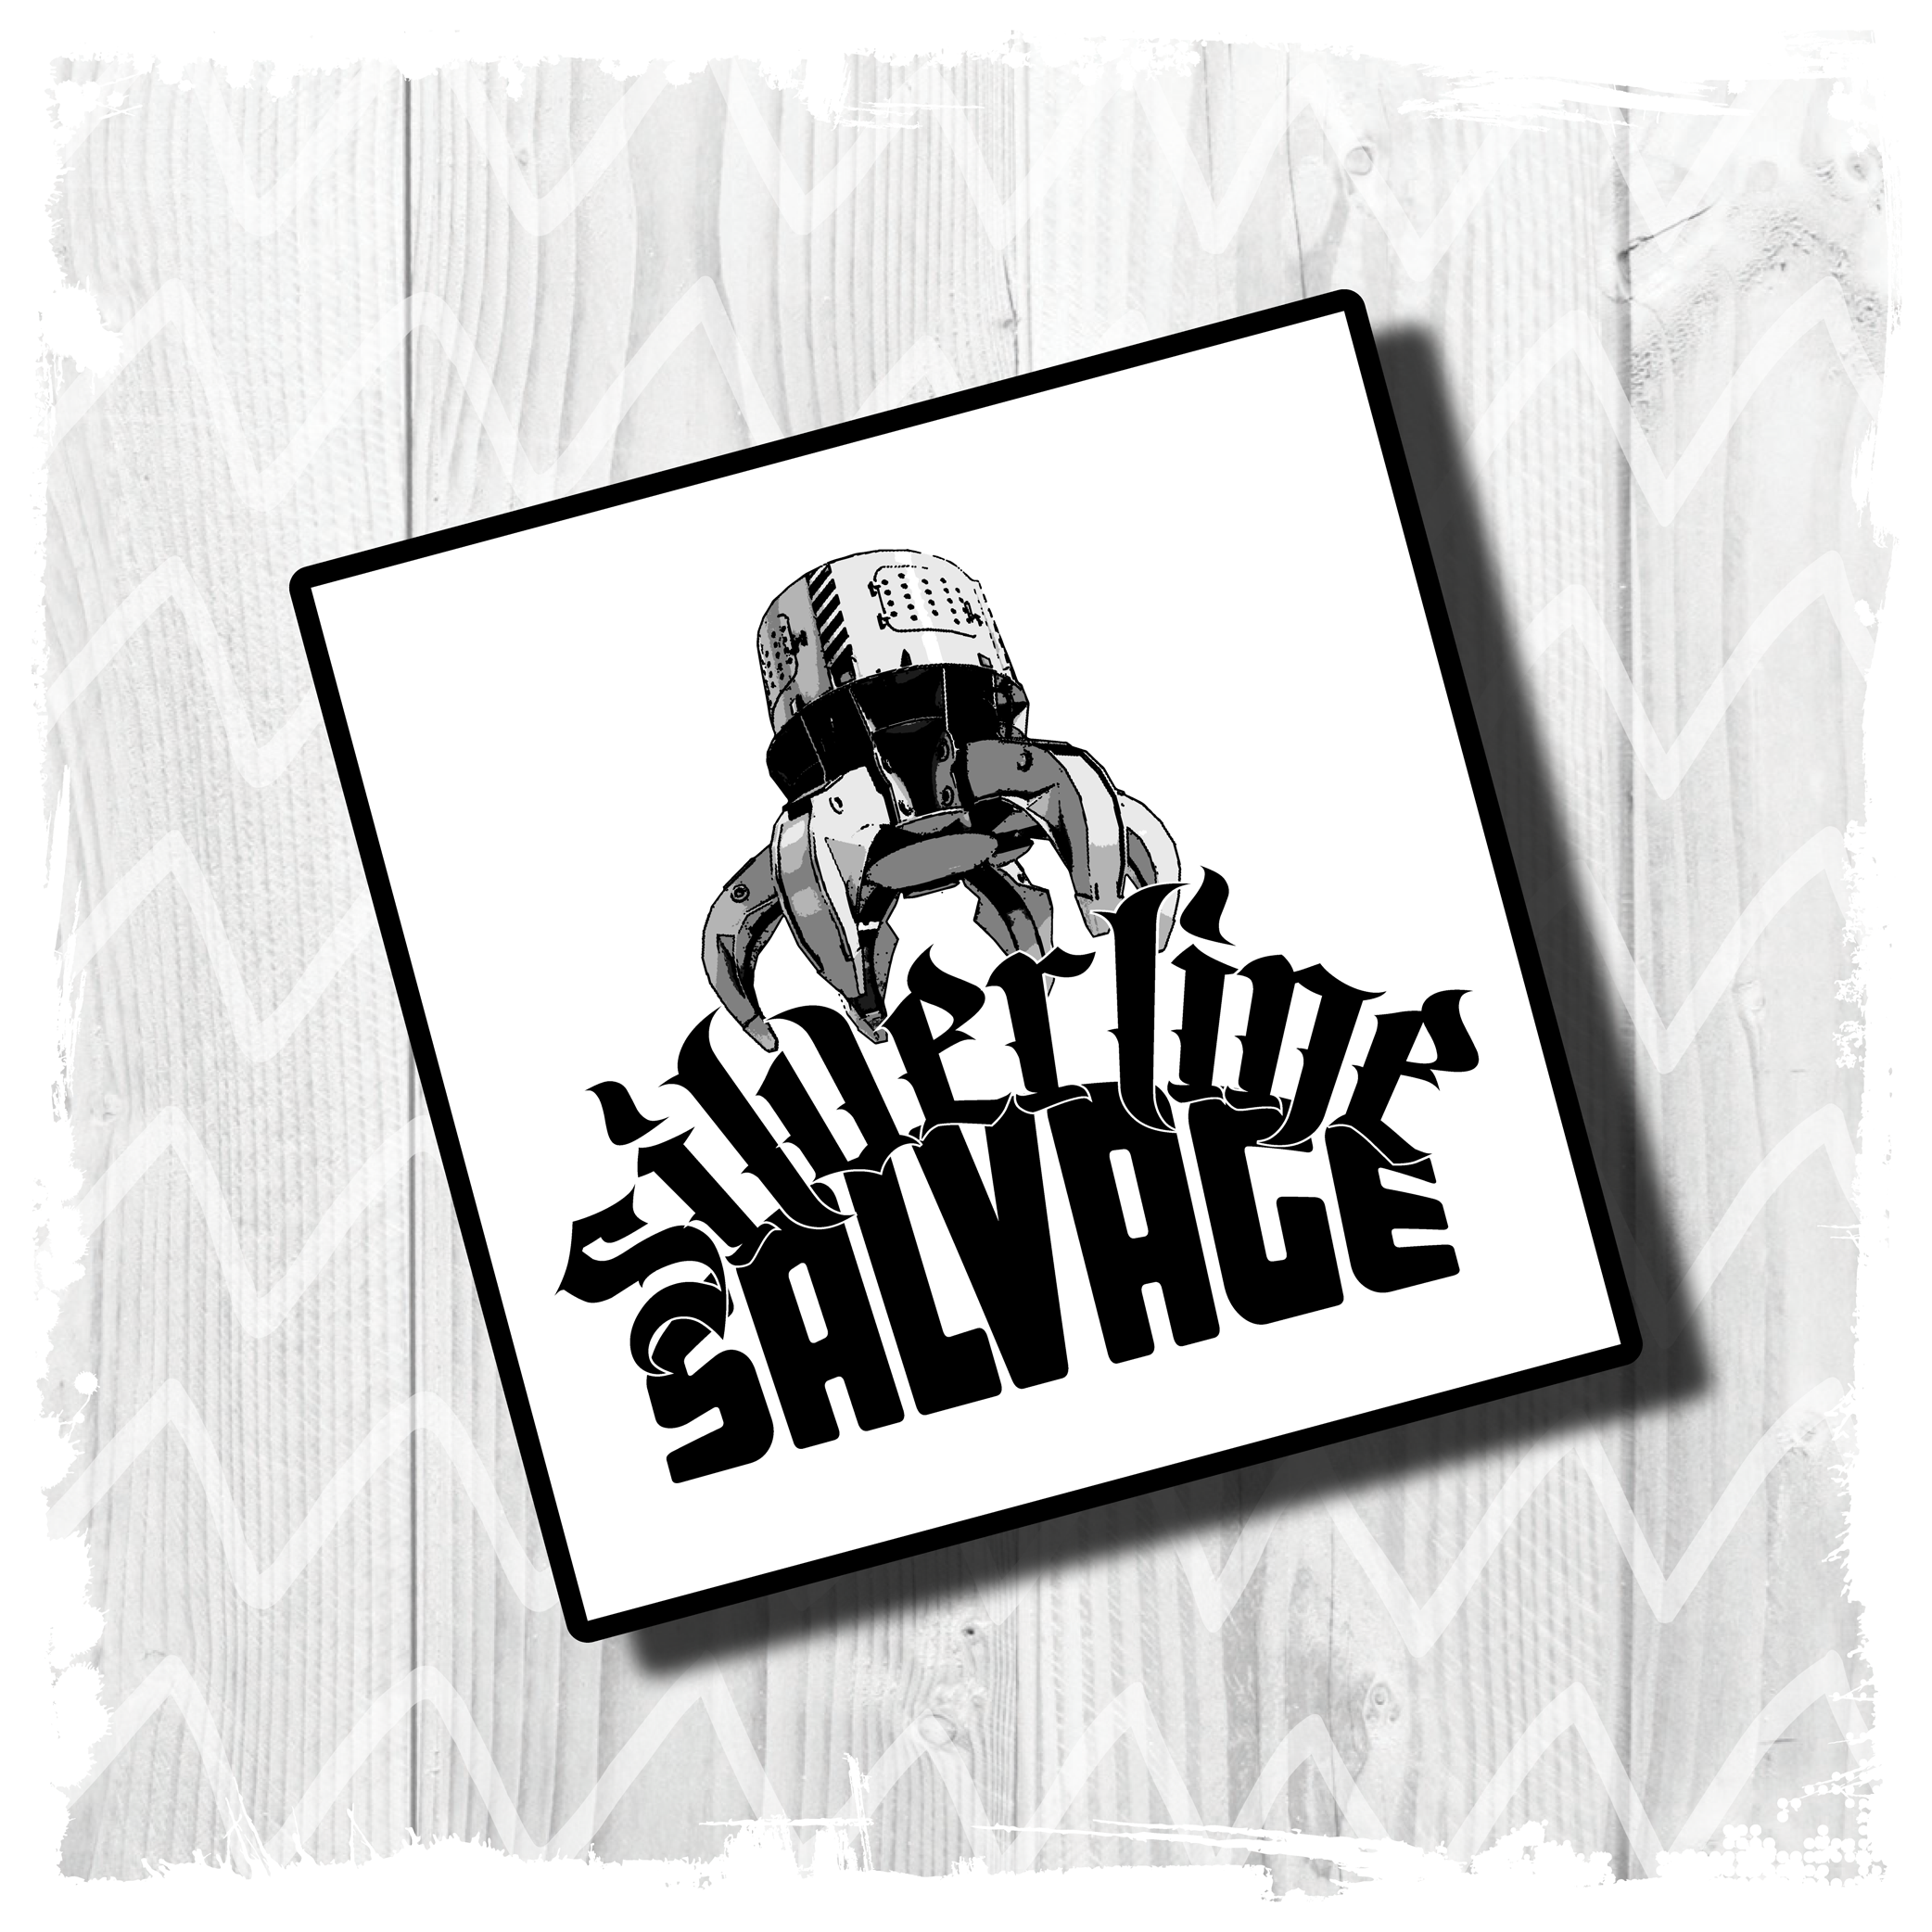 Silverline Salvage